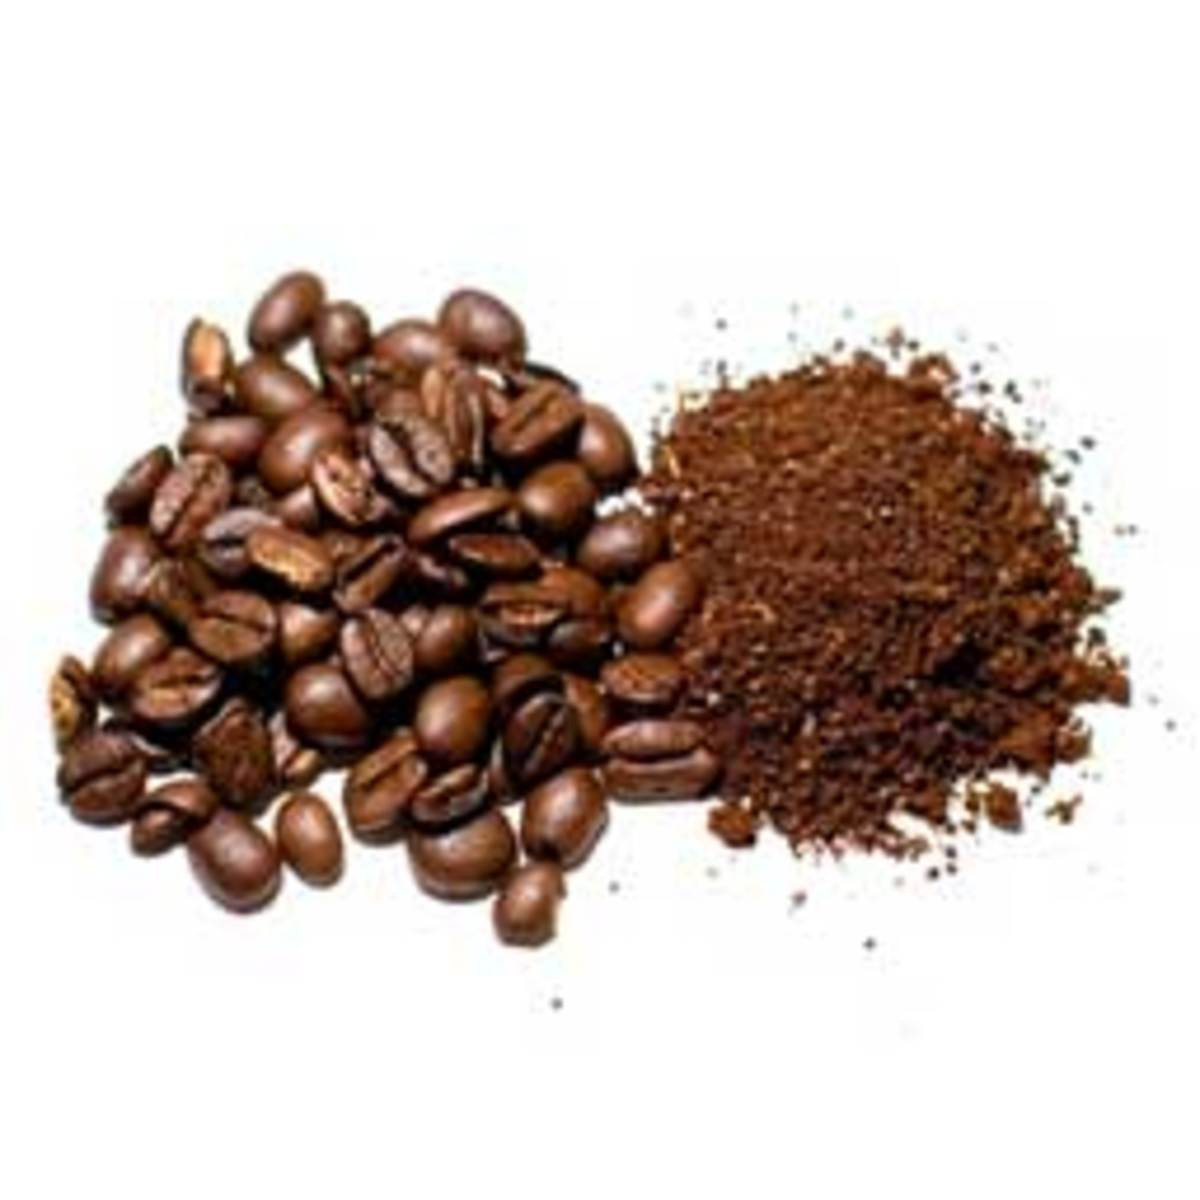 Are Espresso Coffee Beans Different From Regular Coffee Beans